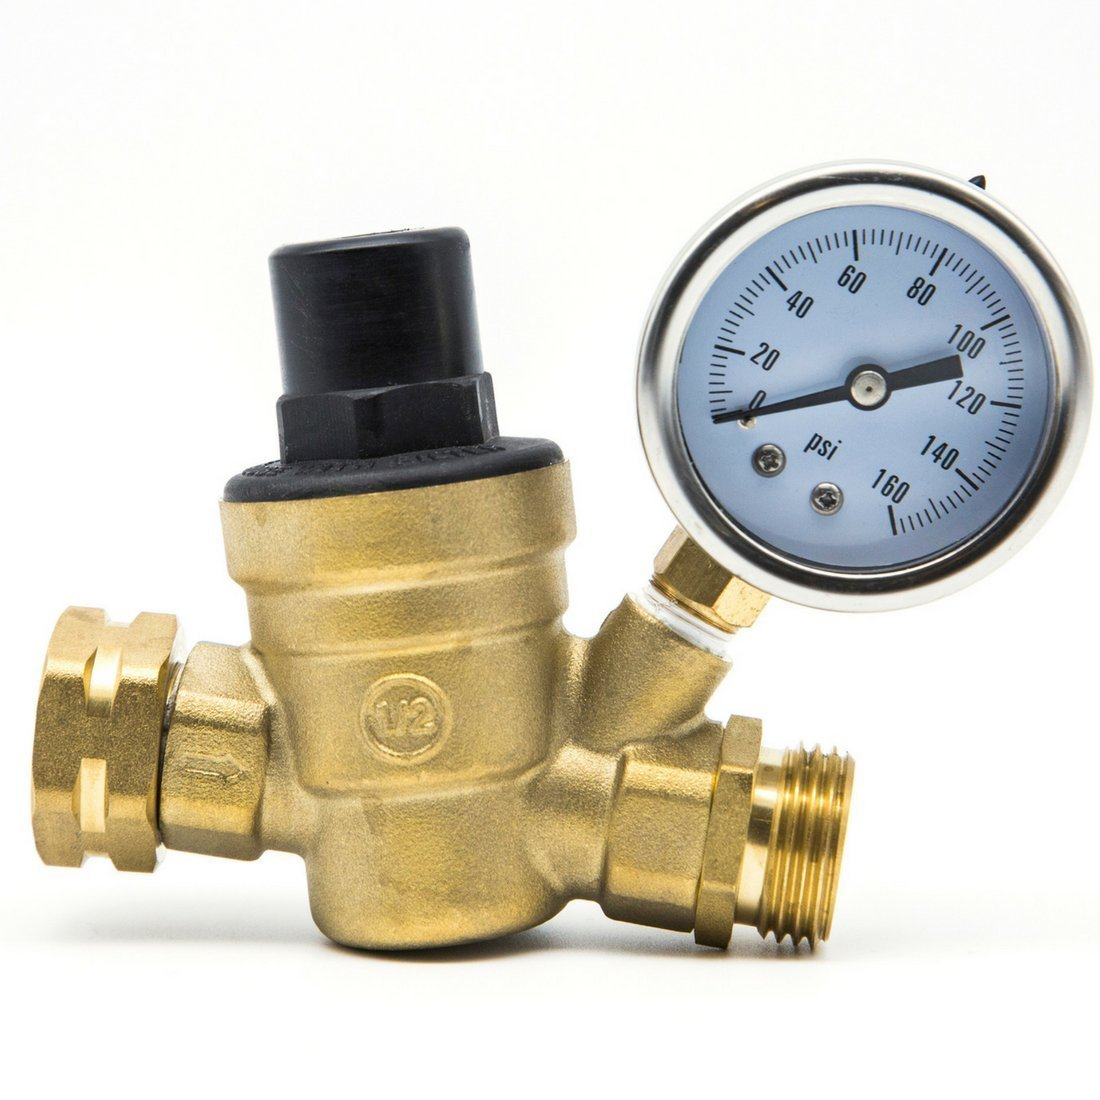 RV Water Pressure Regulator by TrustRV - Get A Perfect Shower in Your RV with This Adjustable Water Pressure Regulator - Well Made & Durable